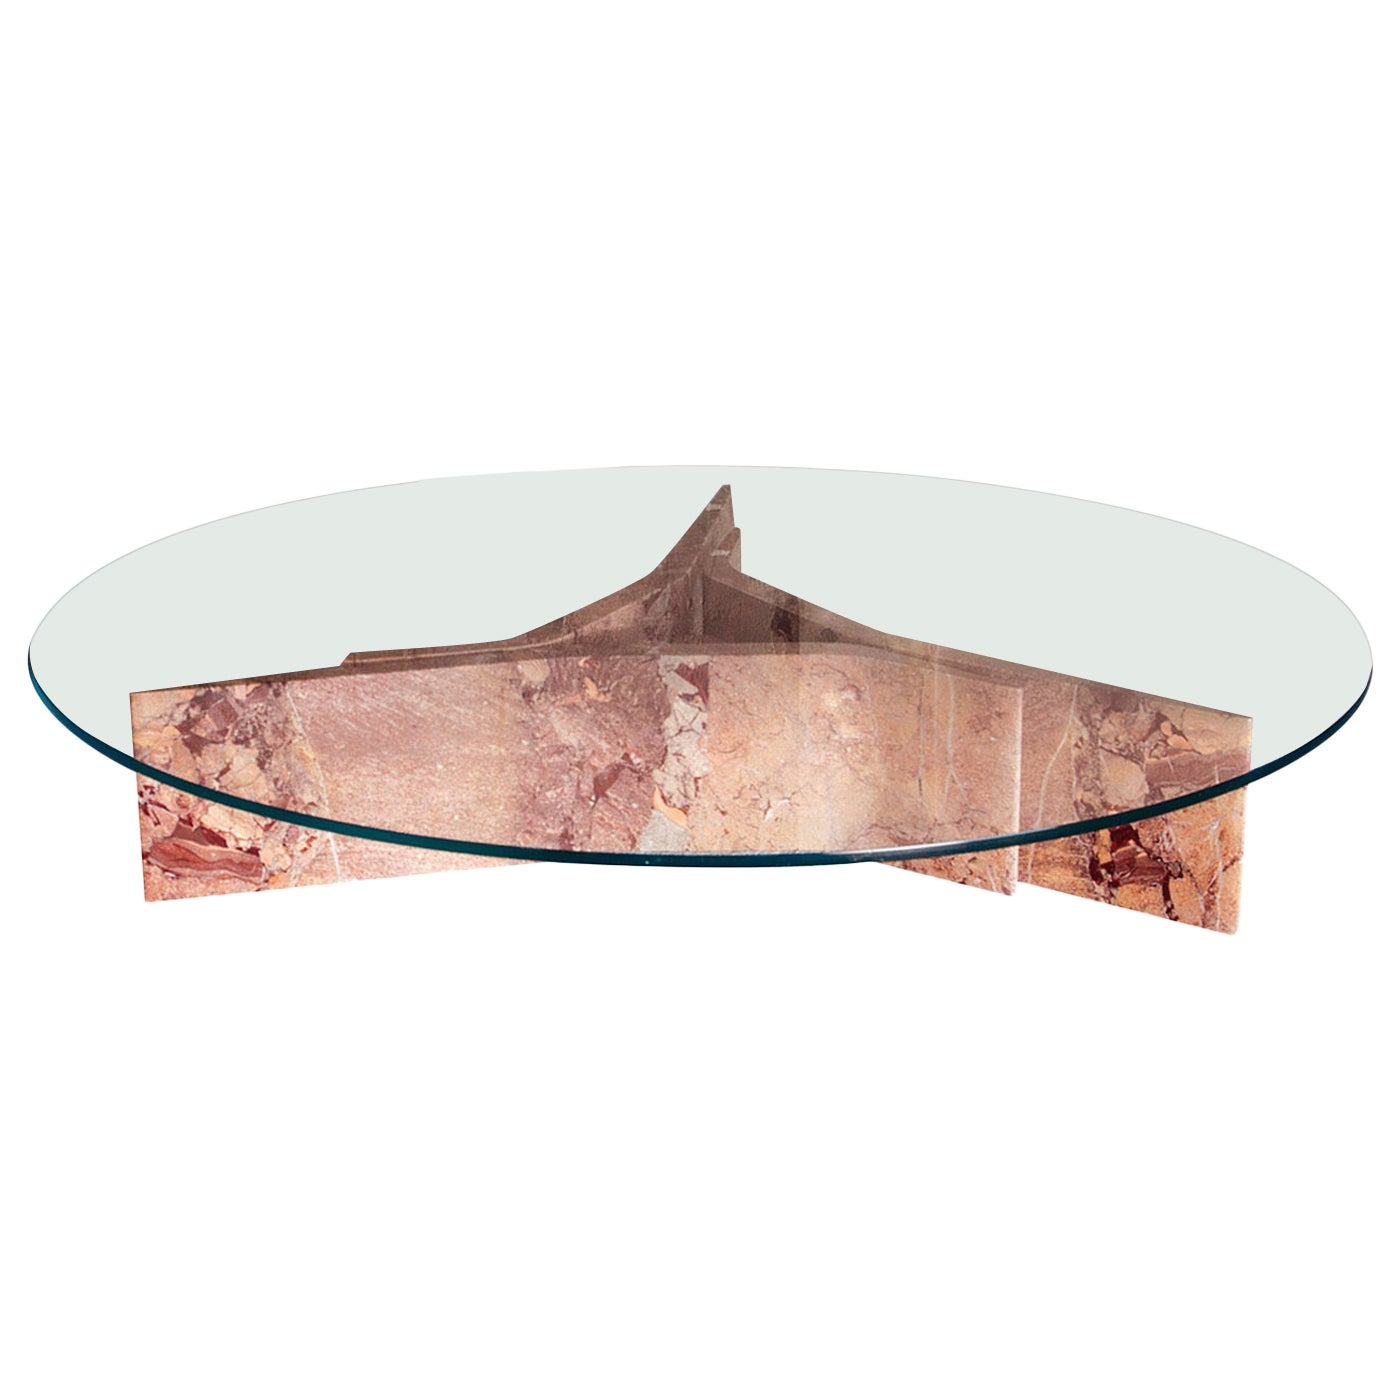 Filo Limited Edition Coffee Table with Versailles Marble Base